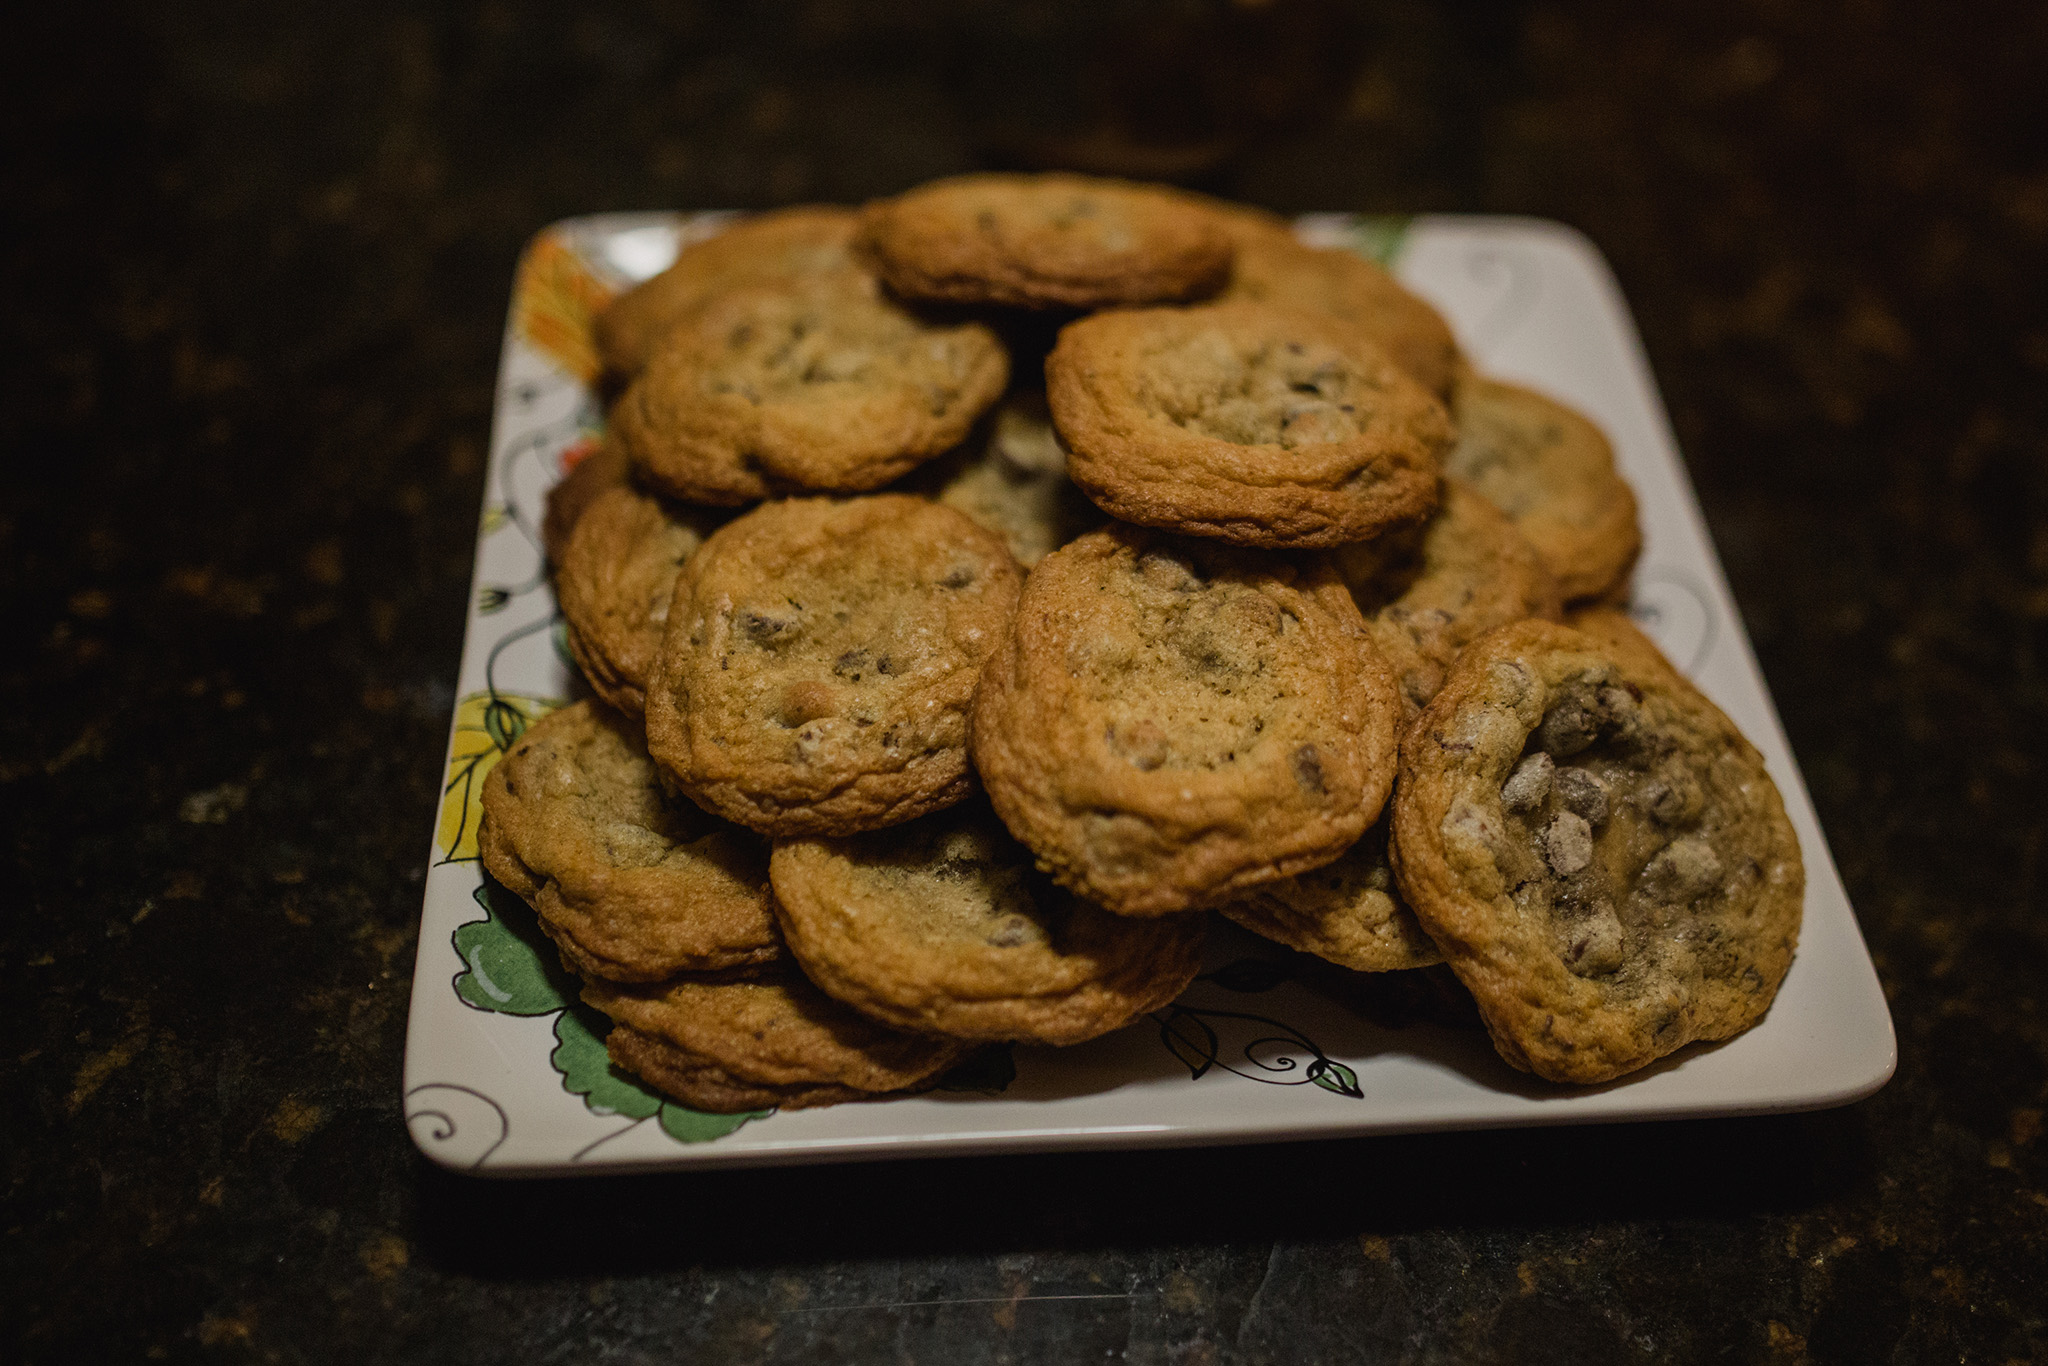 March 17: I drove to Louisville, solo, for part one of our move. Ty was to join me in a few weeks. I spent the night at my Aunt Bridget's, and when I arrived she had homemade cookies sitting out. I was all over the place emotionally and felt so loved.